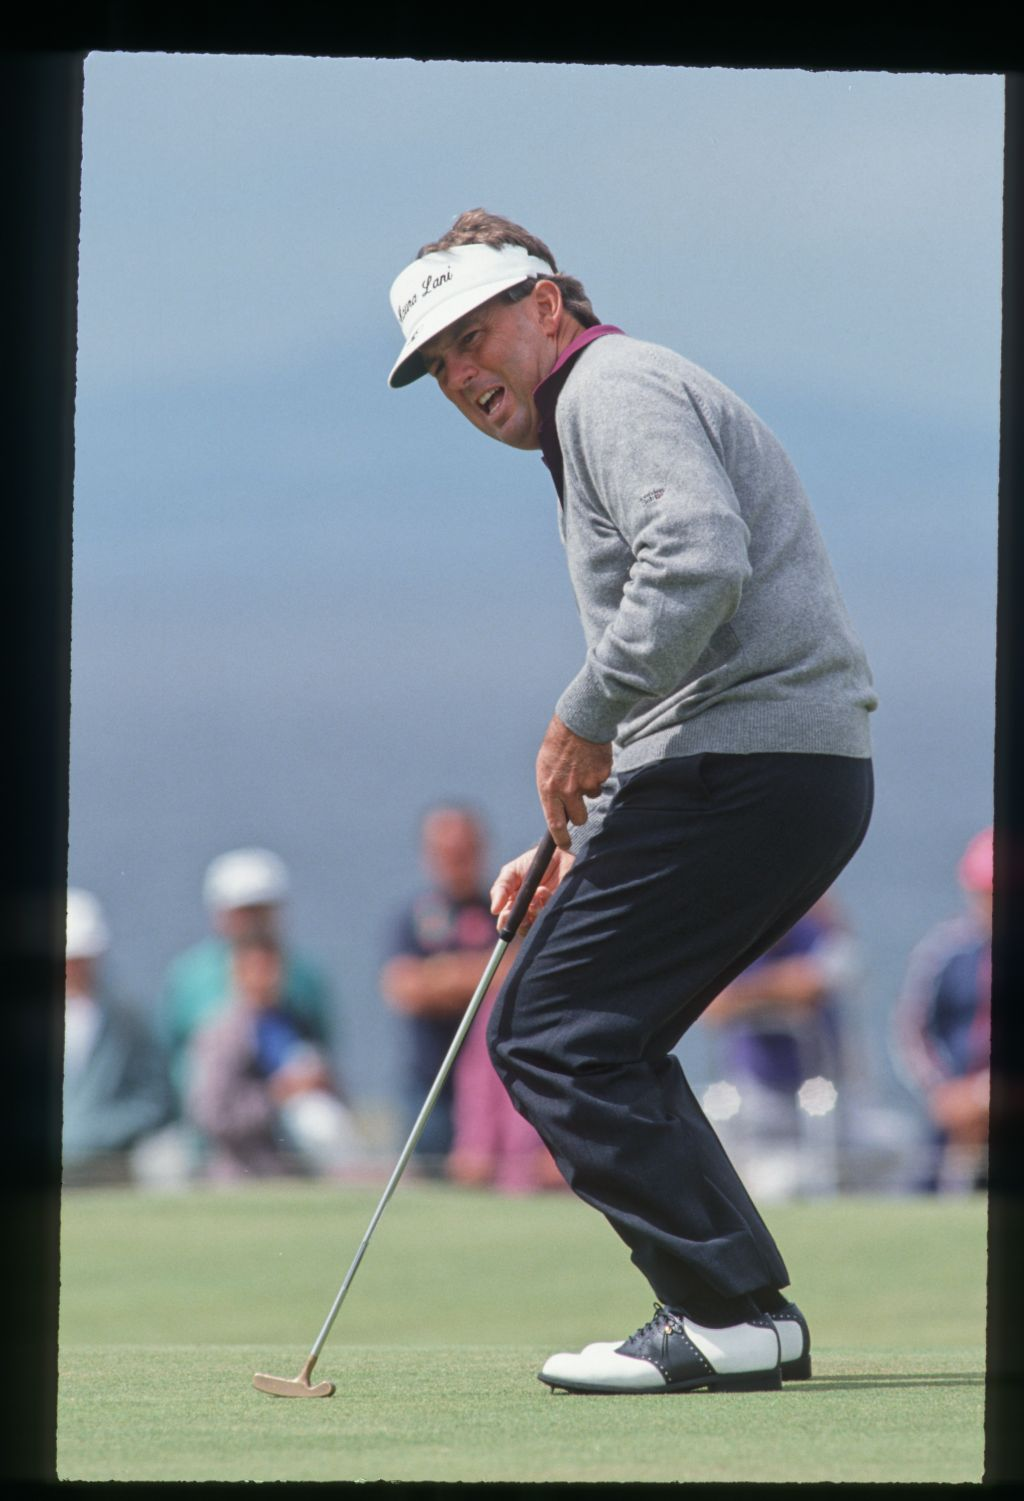 American golfer Lanny Wadkins grimmaces as he misses his putt at the 1992 Open Championship at Muirfield